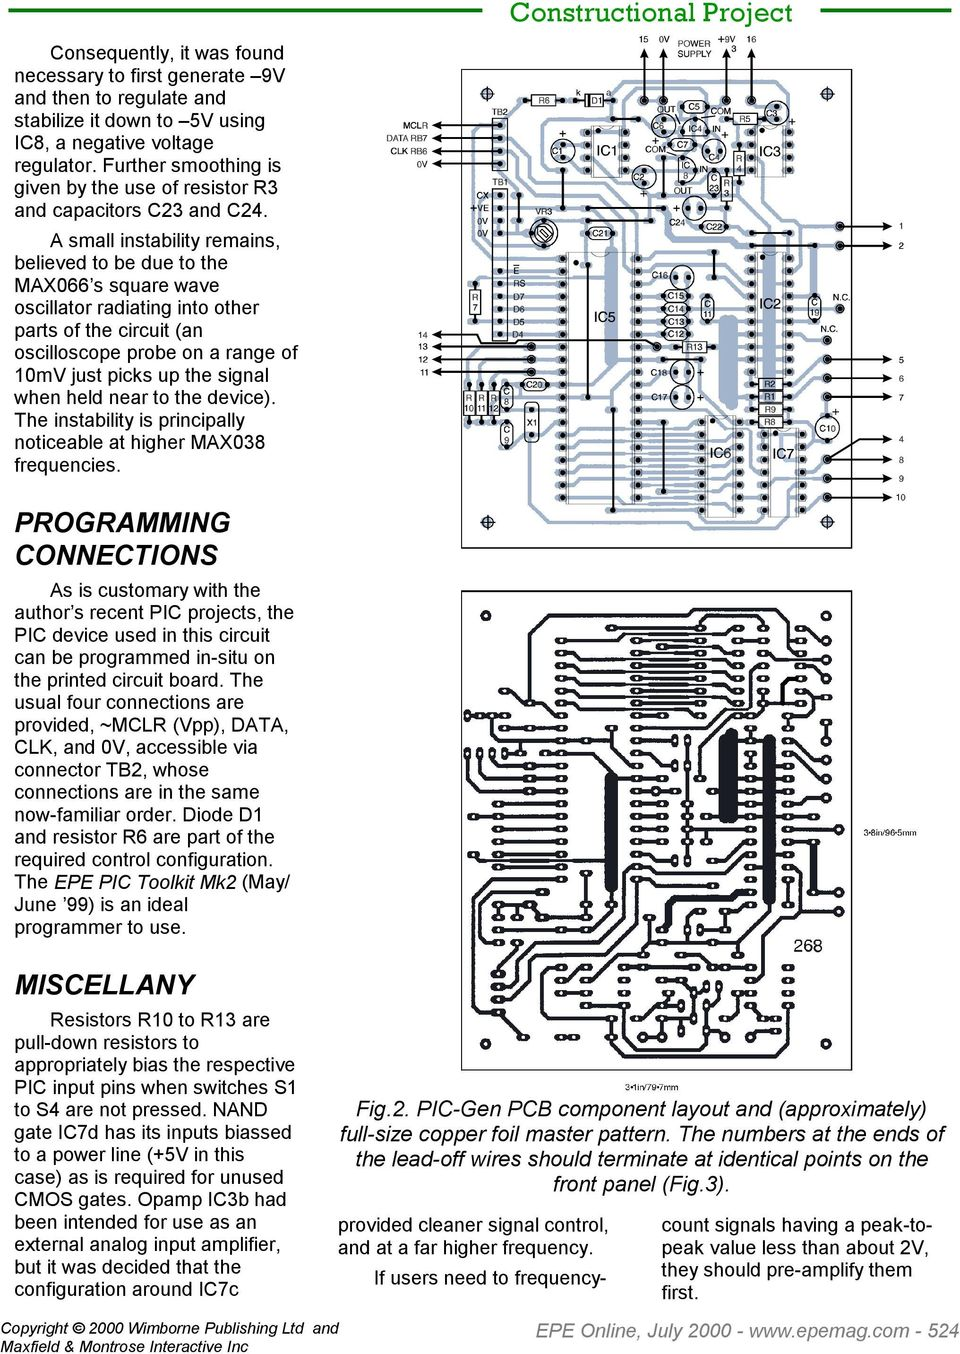 Pic Gen Frequency Generator Counter By John Becker Pdf The Circuit Design I Use To Create A Variable Frequencygenerator Small Instability Remains Believed Be Due Max066 S Square Wave Oscillator